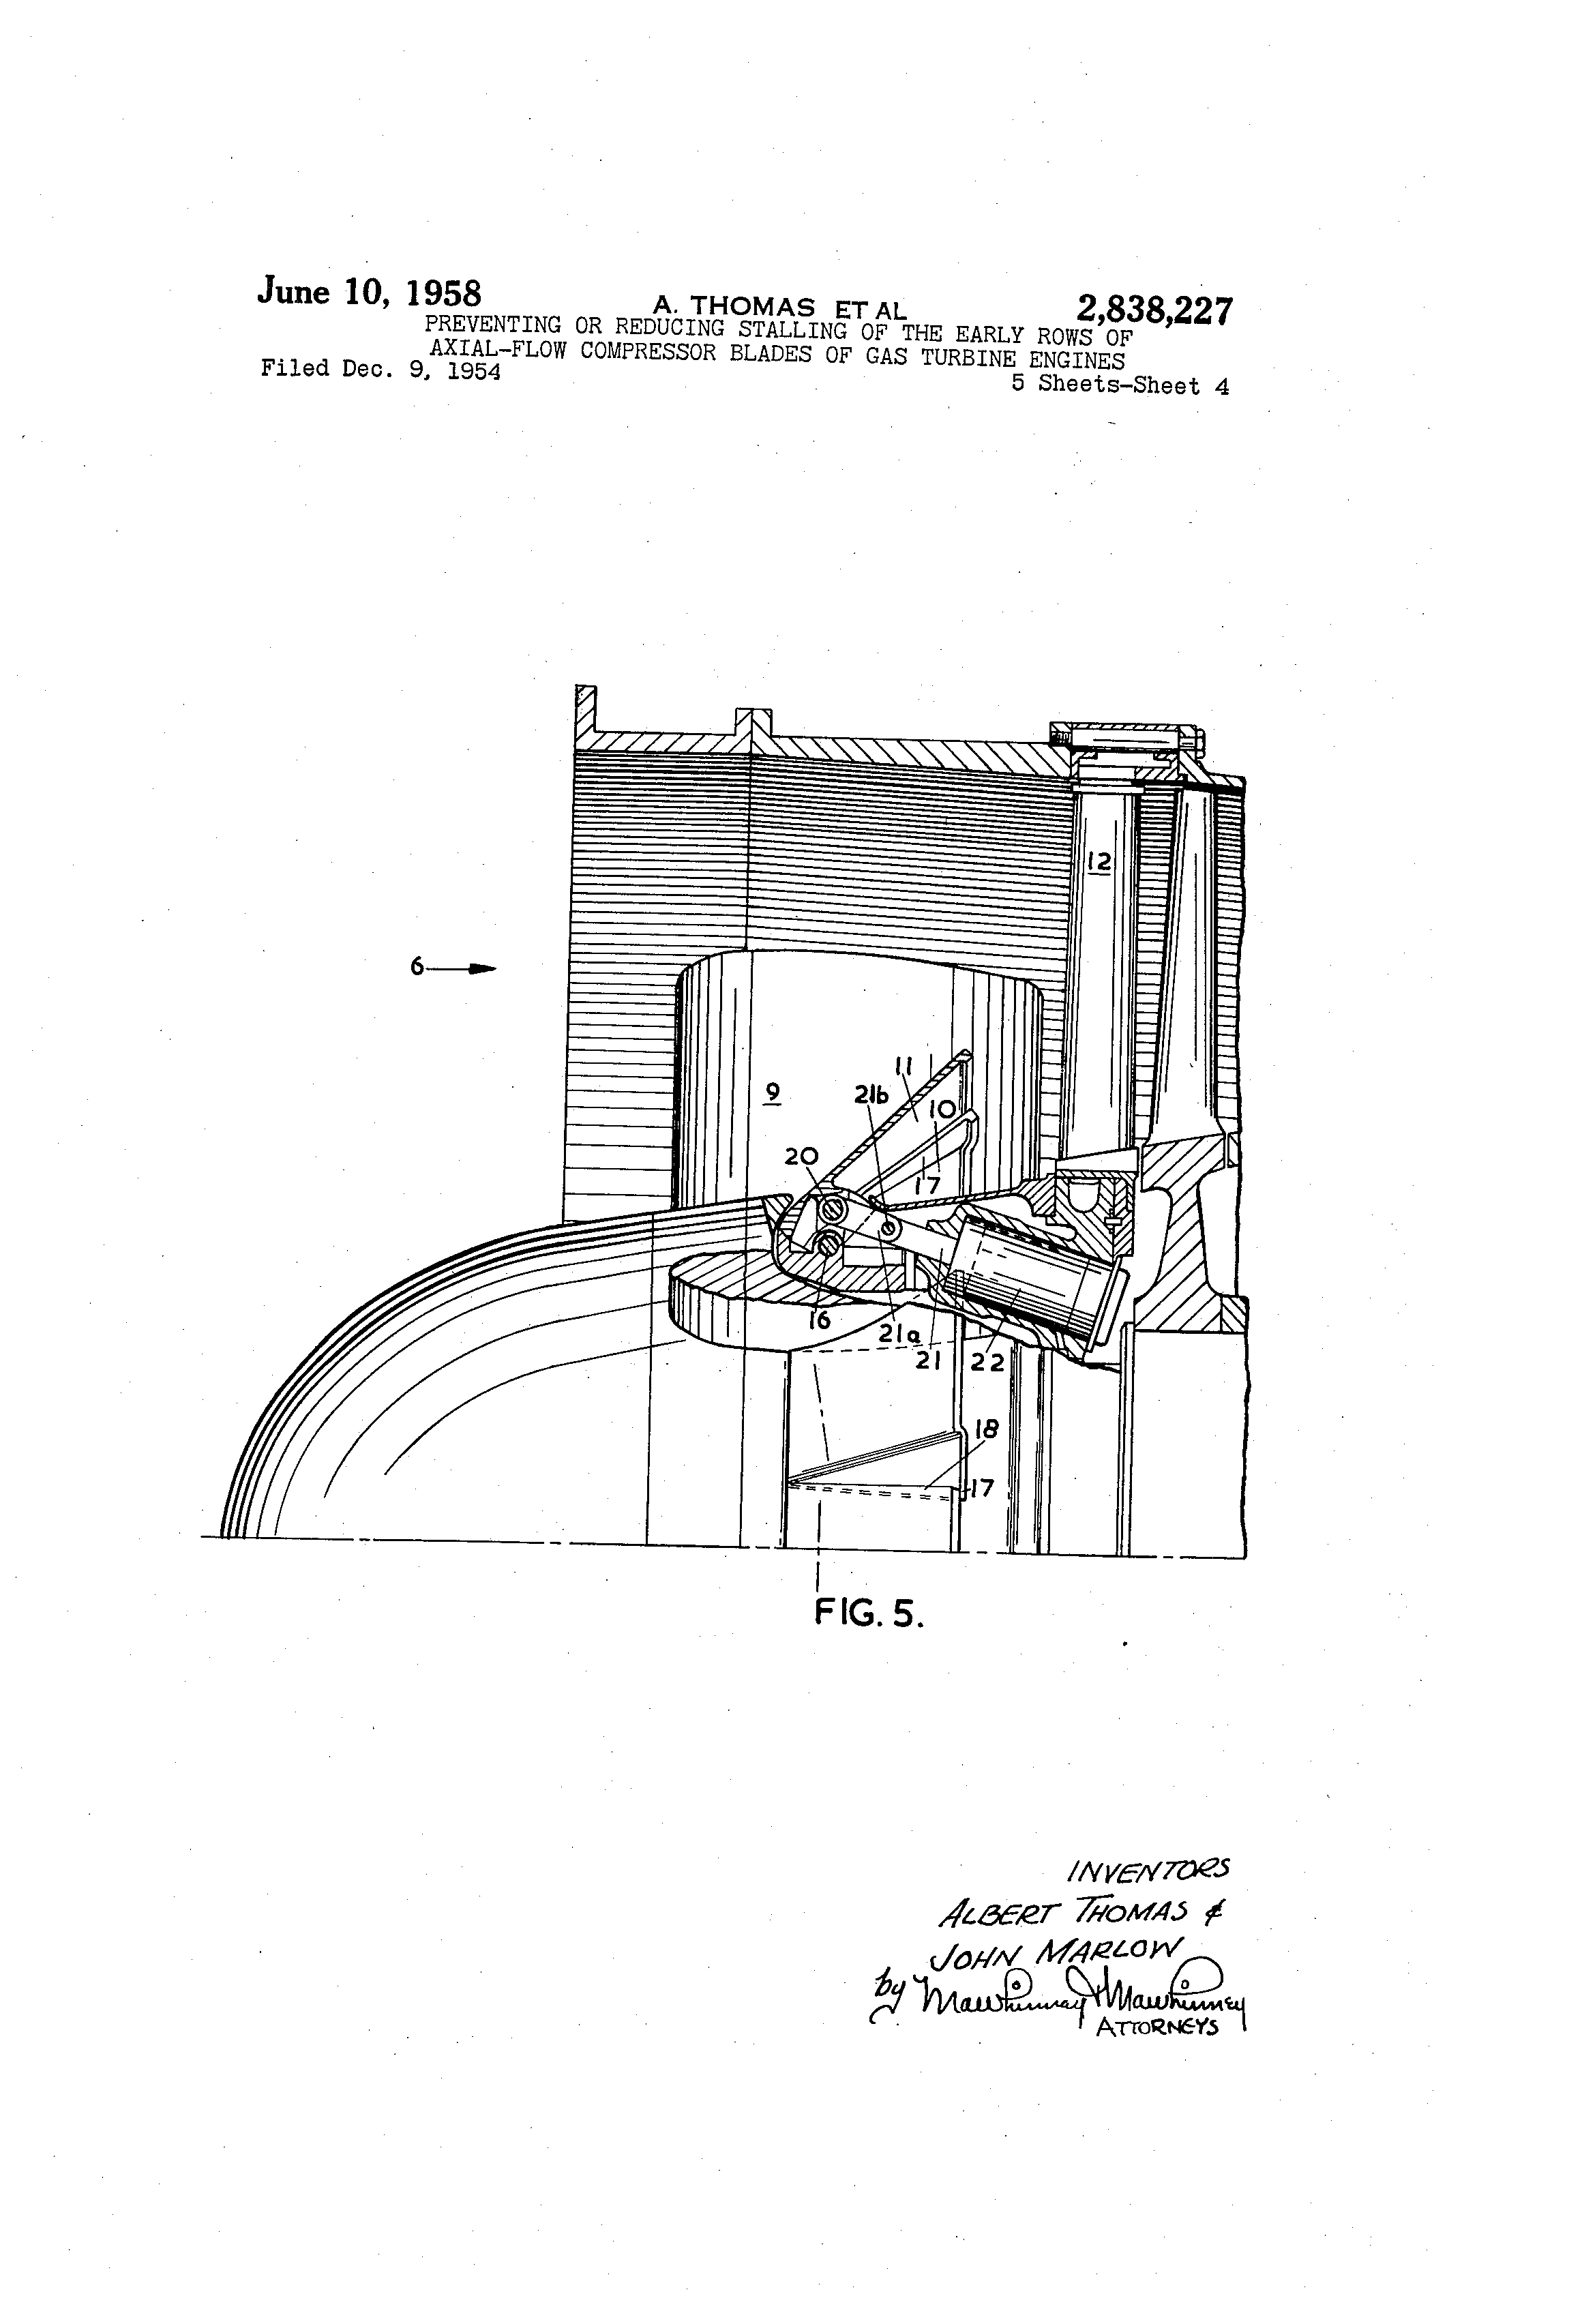 Brevet Us2838227 Preventing Or Reducing Stalling Of The Early Rows Jet Engine Diagram An Axialflow Patent Drawing